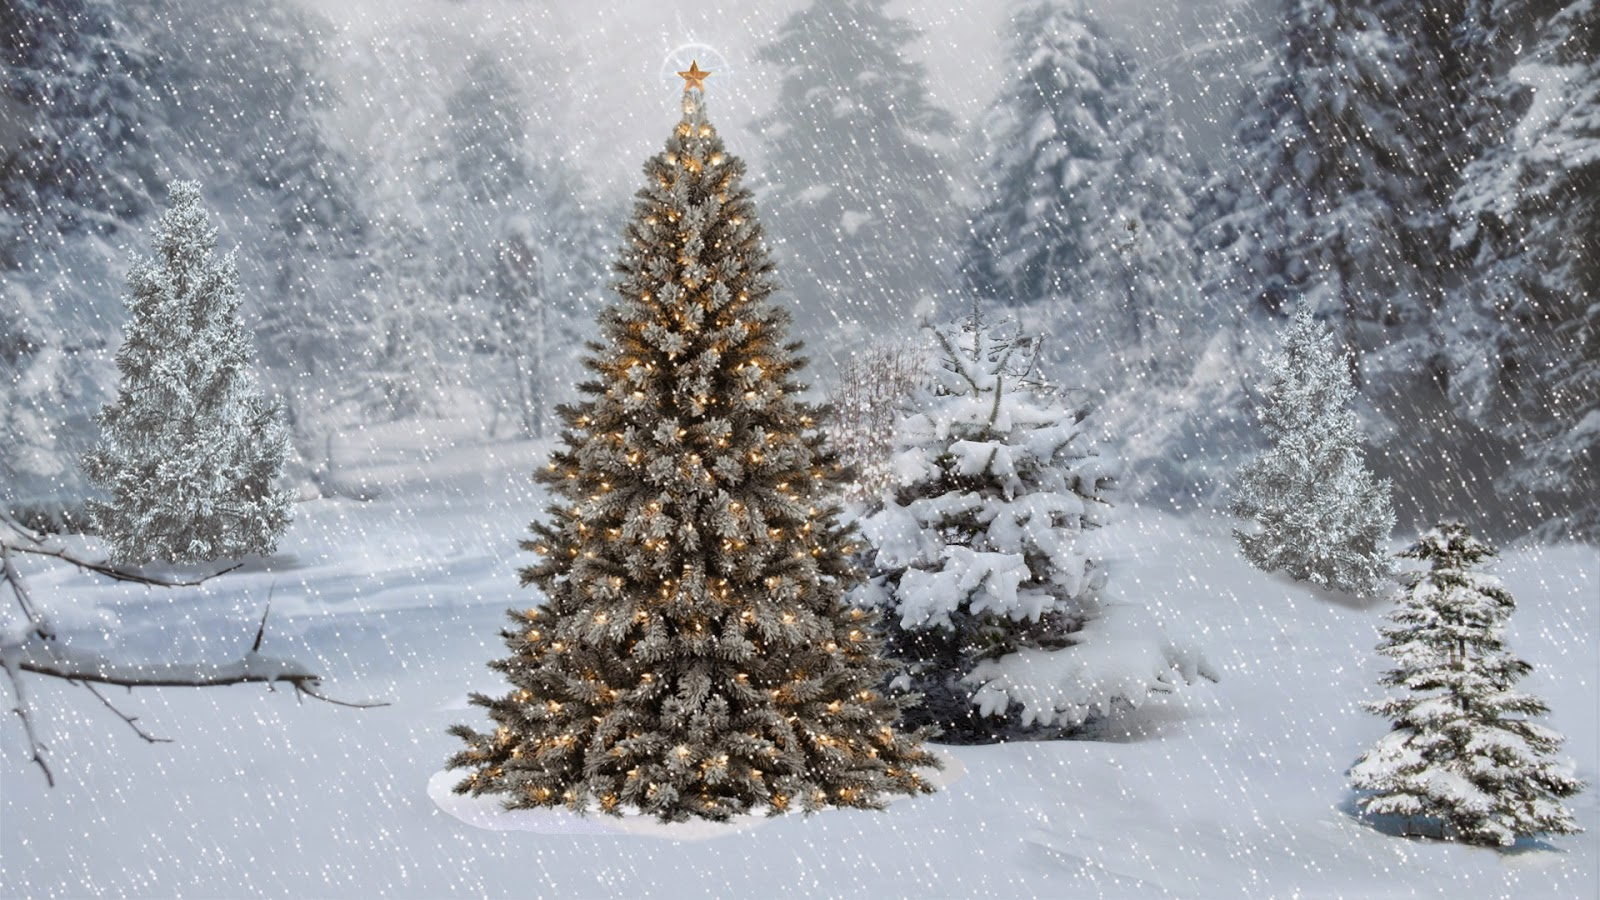 Christmas tree snow hd wallpaper full version free crack